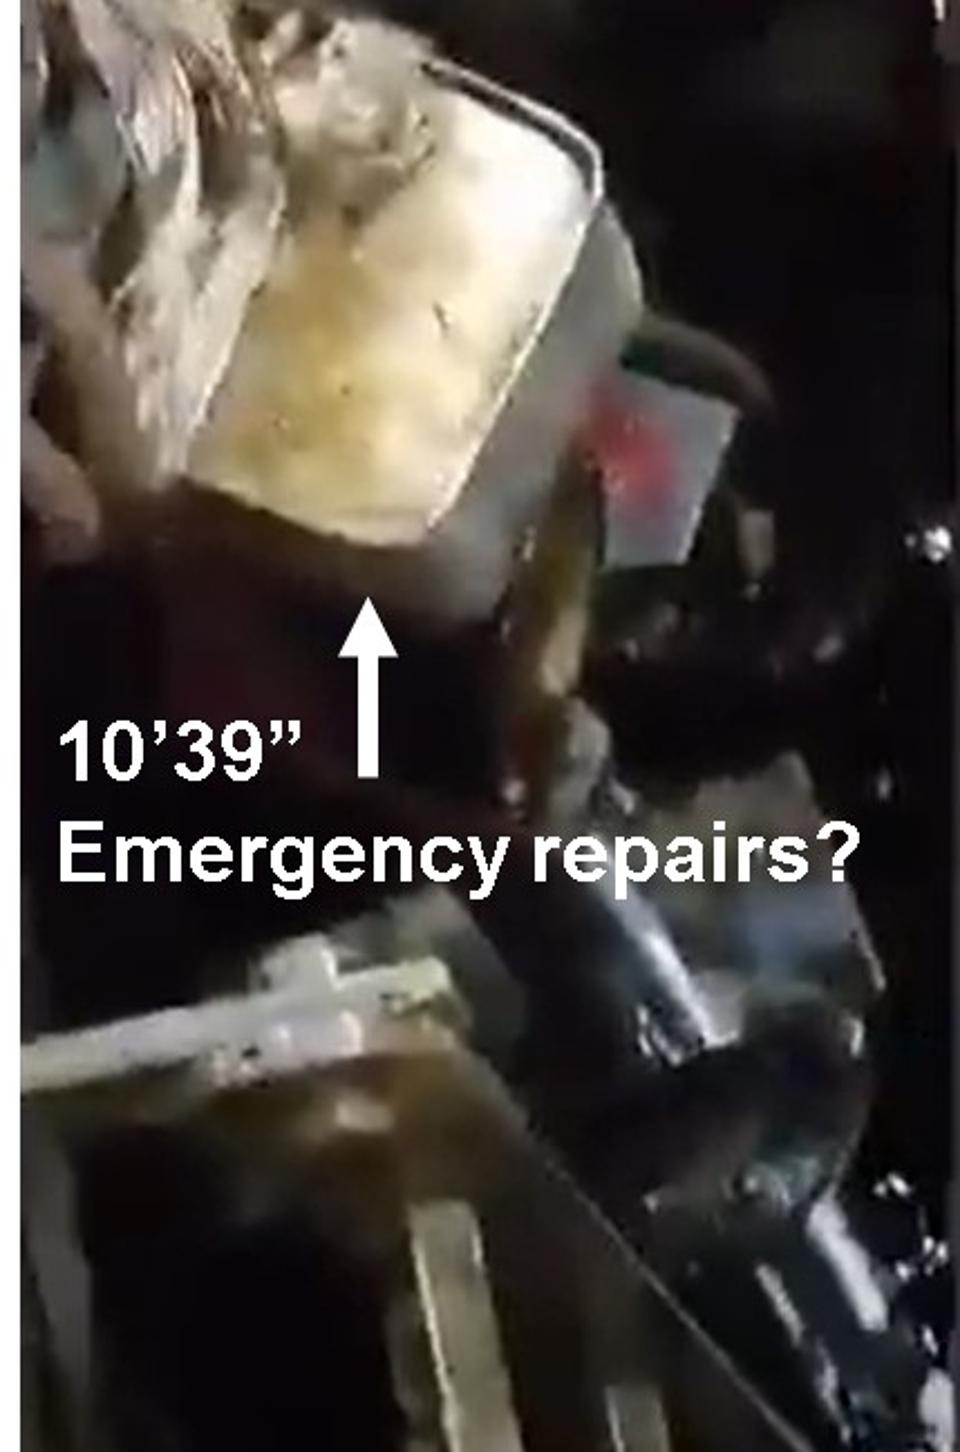 Emergency repairs within the engine room?  What other emergency repairs had been carried out and had they been certified as safe?